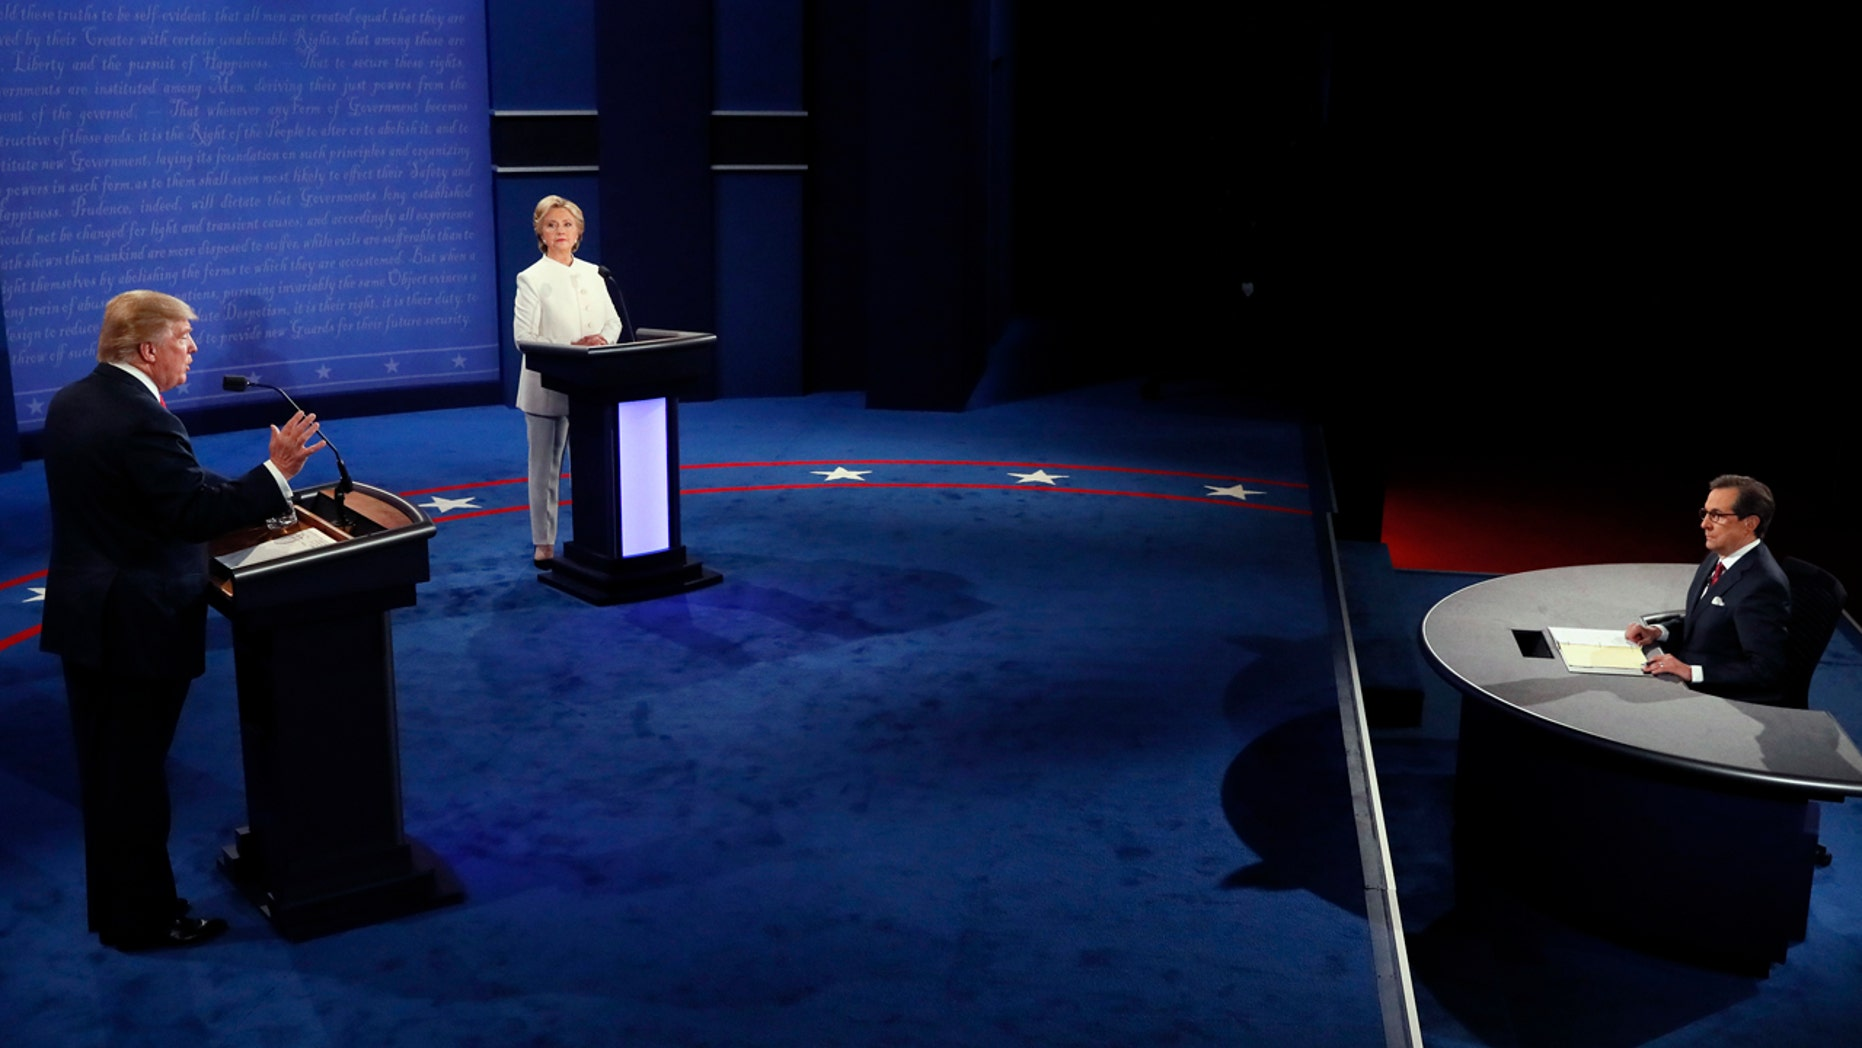 Democratic presidential nominee Hillary Clinton debates with Republican presidential nominee Donald Trump during the third presidential debate at UNLV in Las Vegas, Wednesday, Oct. 19, 2016. (Mark Ralston/Pool via AP)